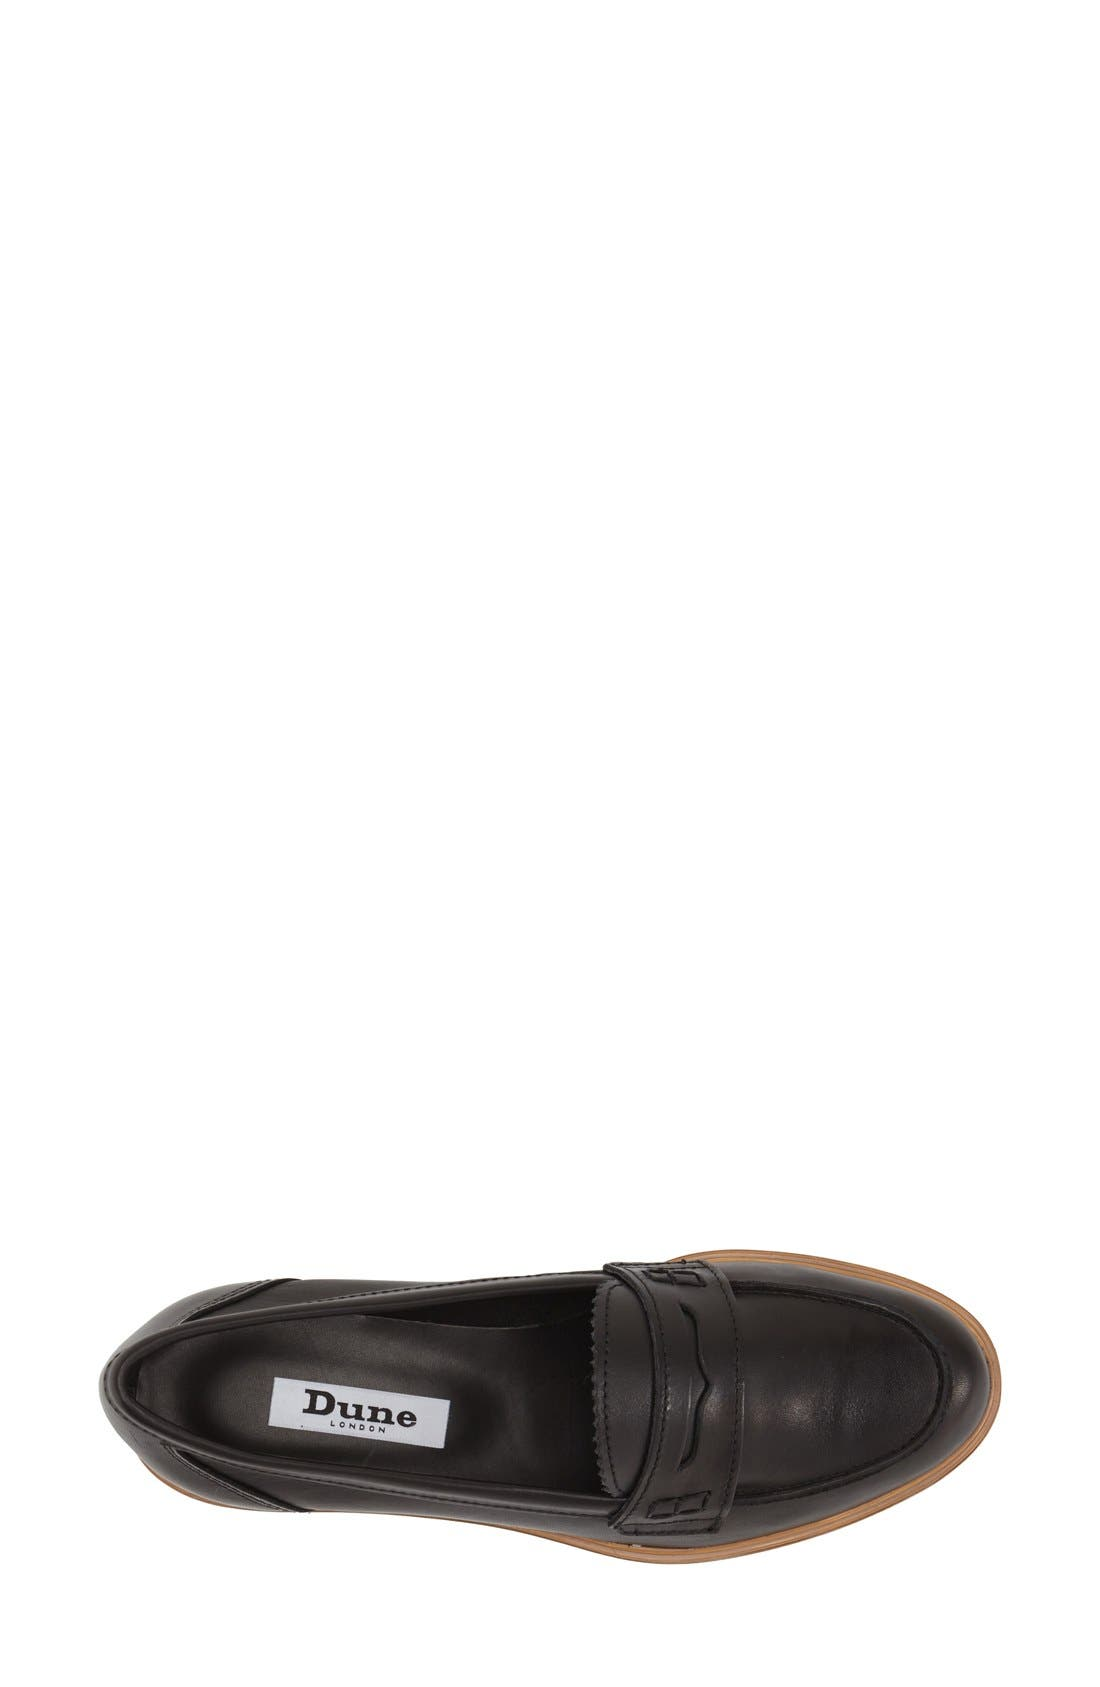 Alternate Image 3  - Dune London 'Gleat' Loafer (Women)